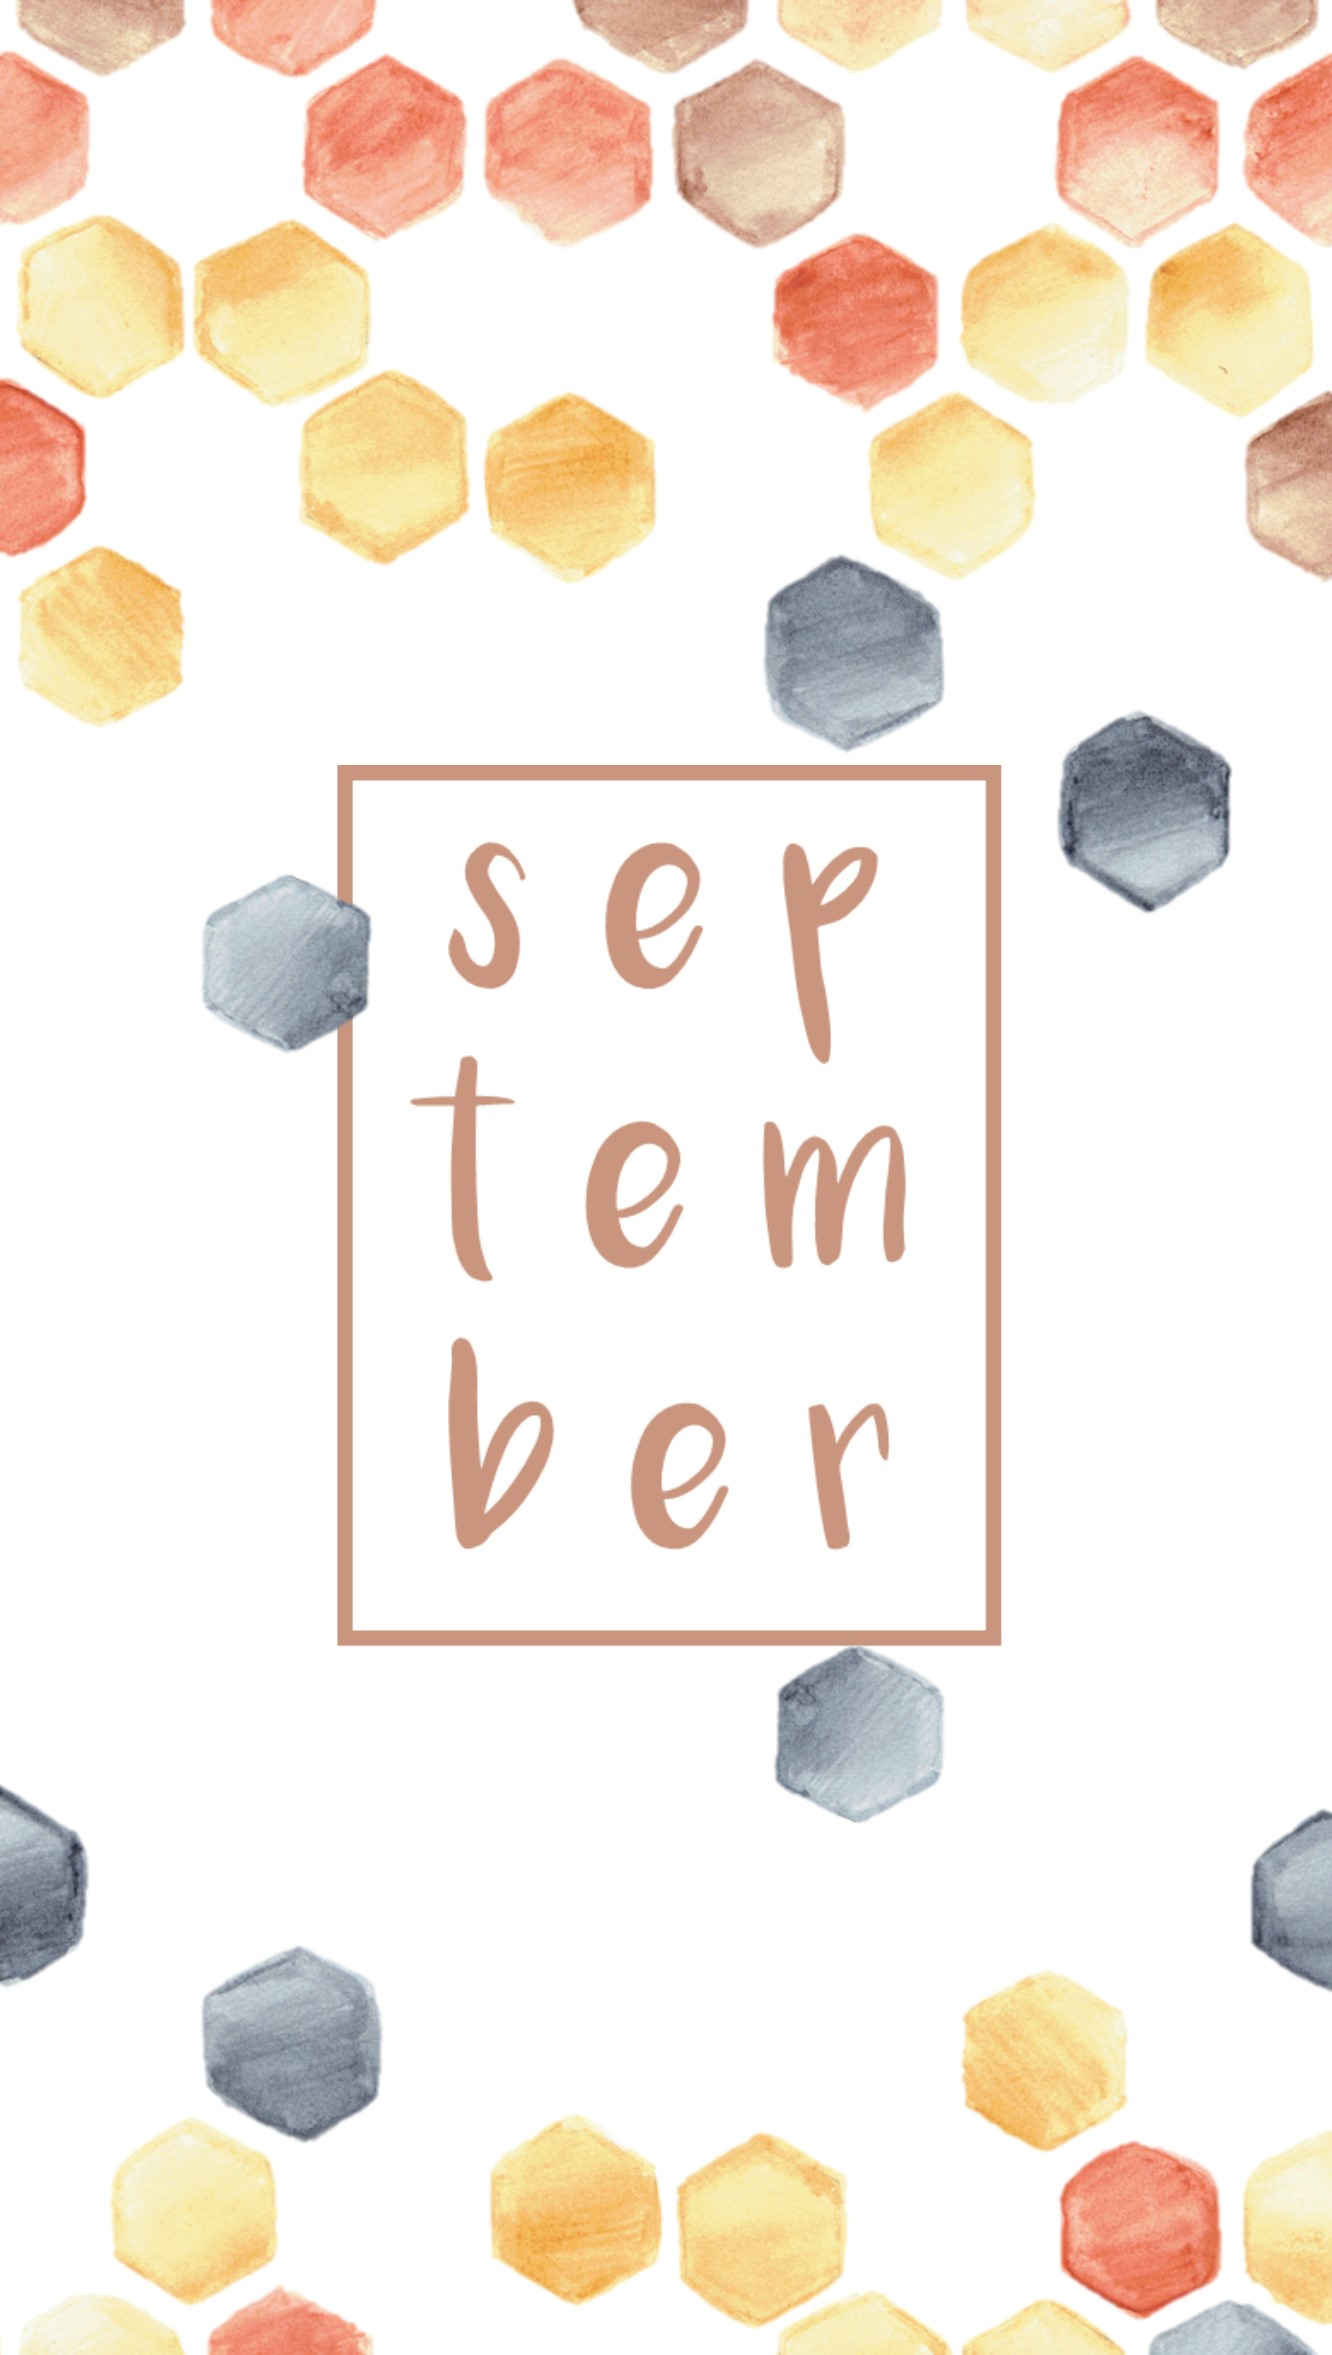 September Iphone Wallpapers Top Free September Iphone Backgrounds Wallpaperaccess